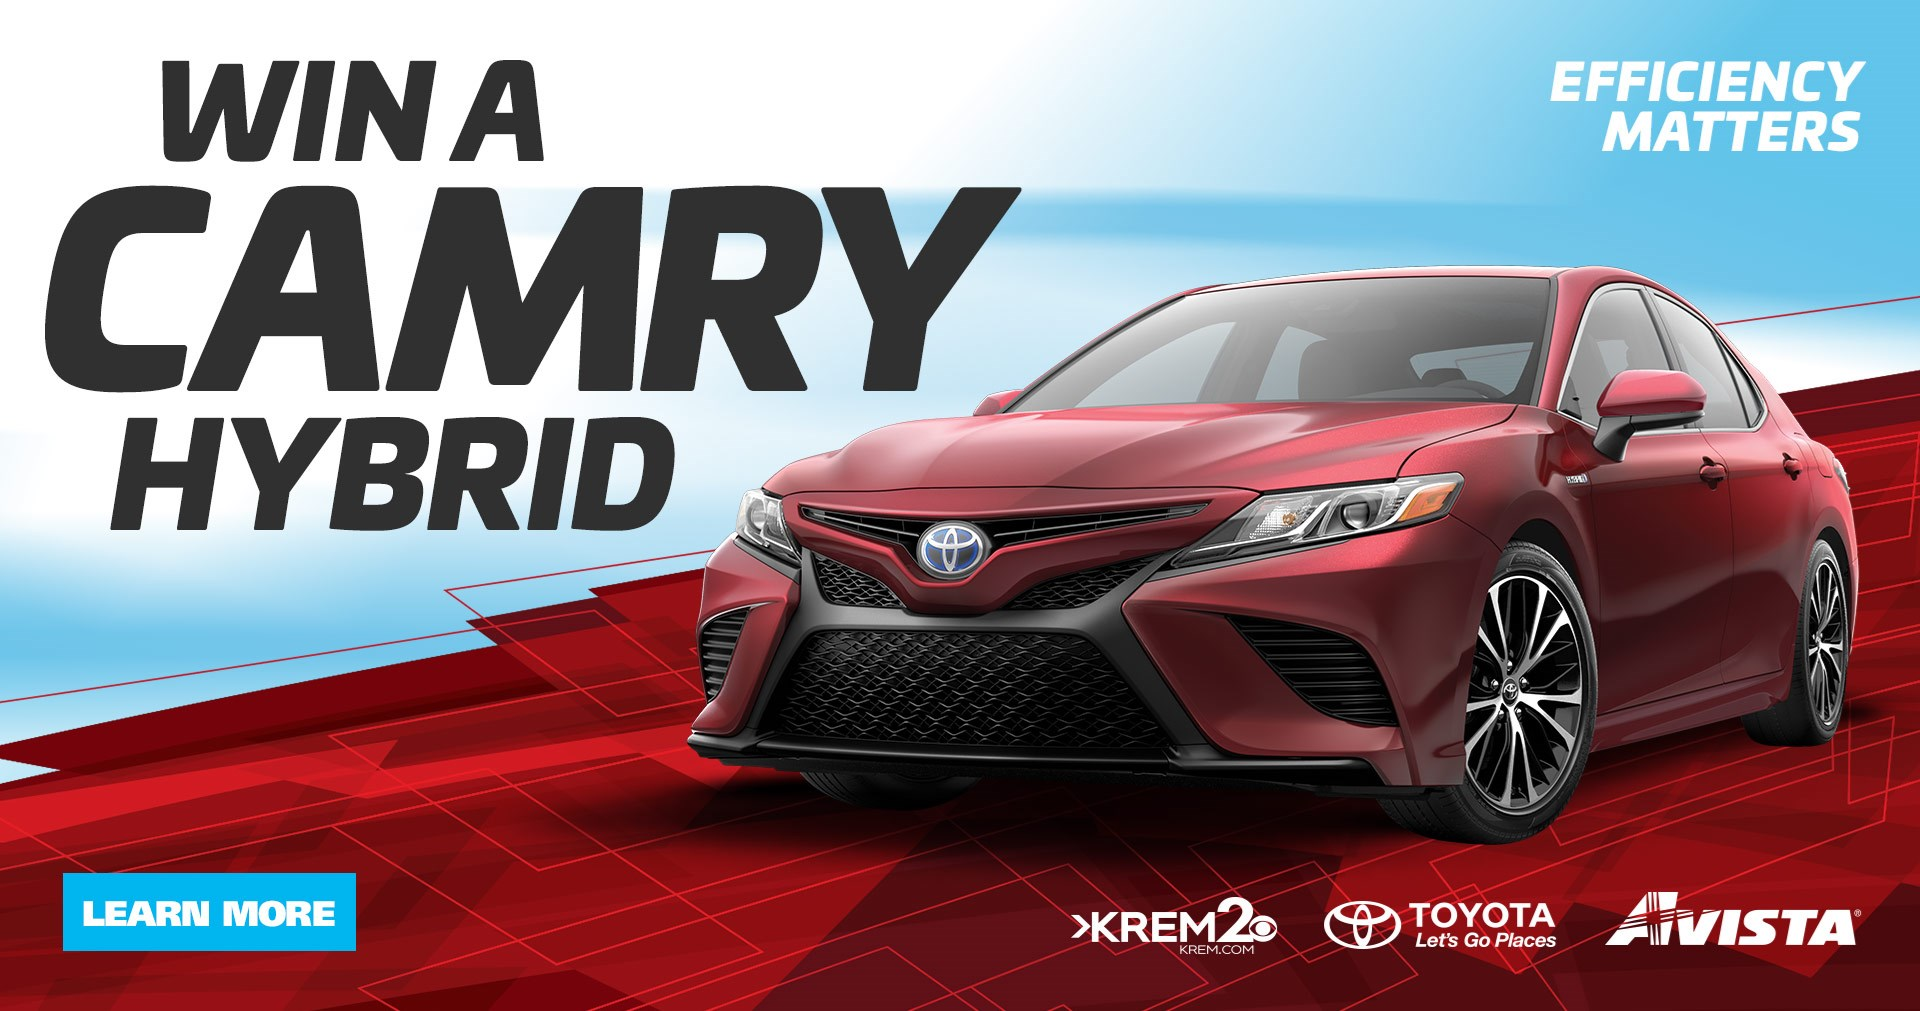 Win a Camry Hybrid Sweepstakes